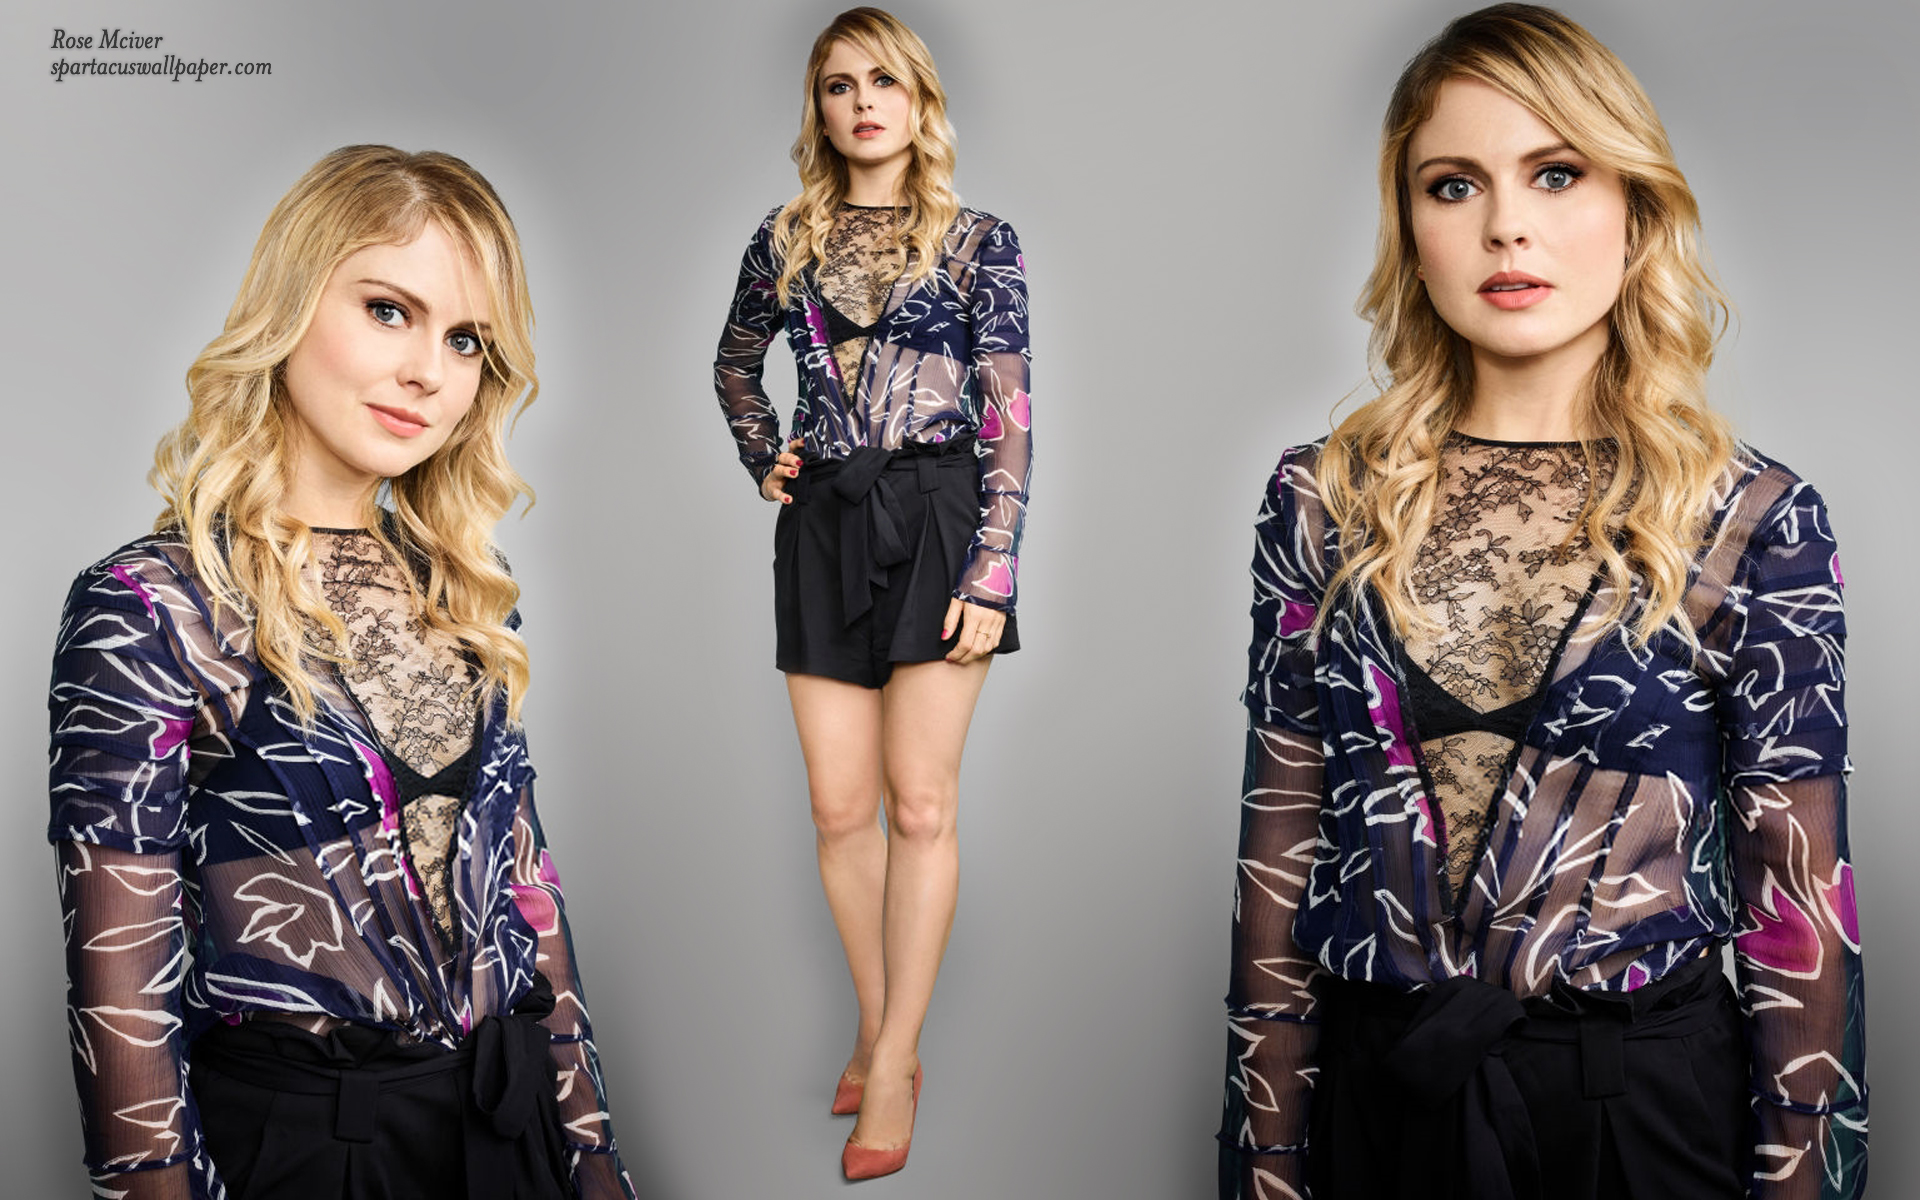 1920x1200 - Rose McIver Wallpapers 9